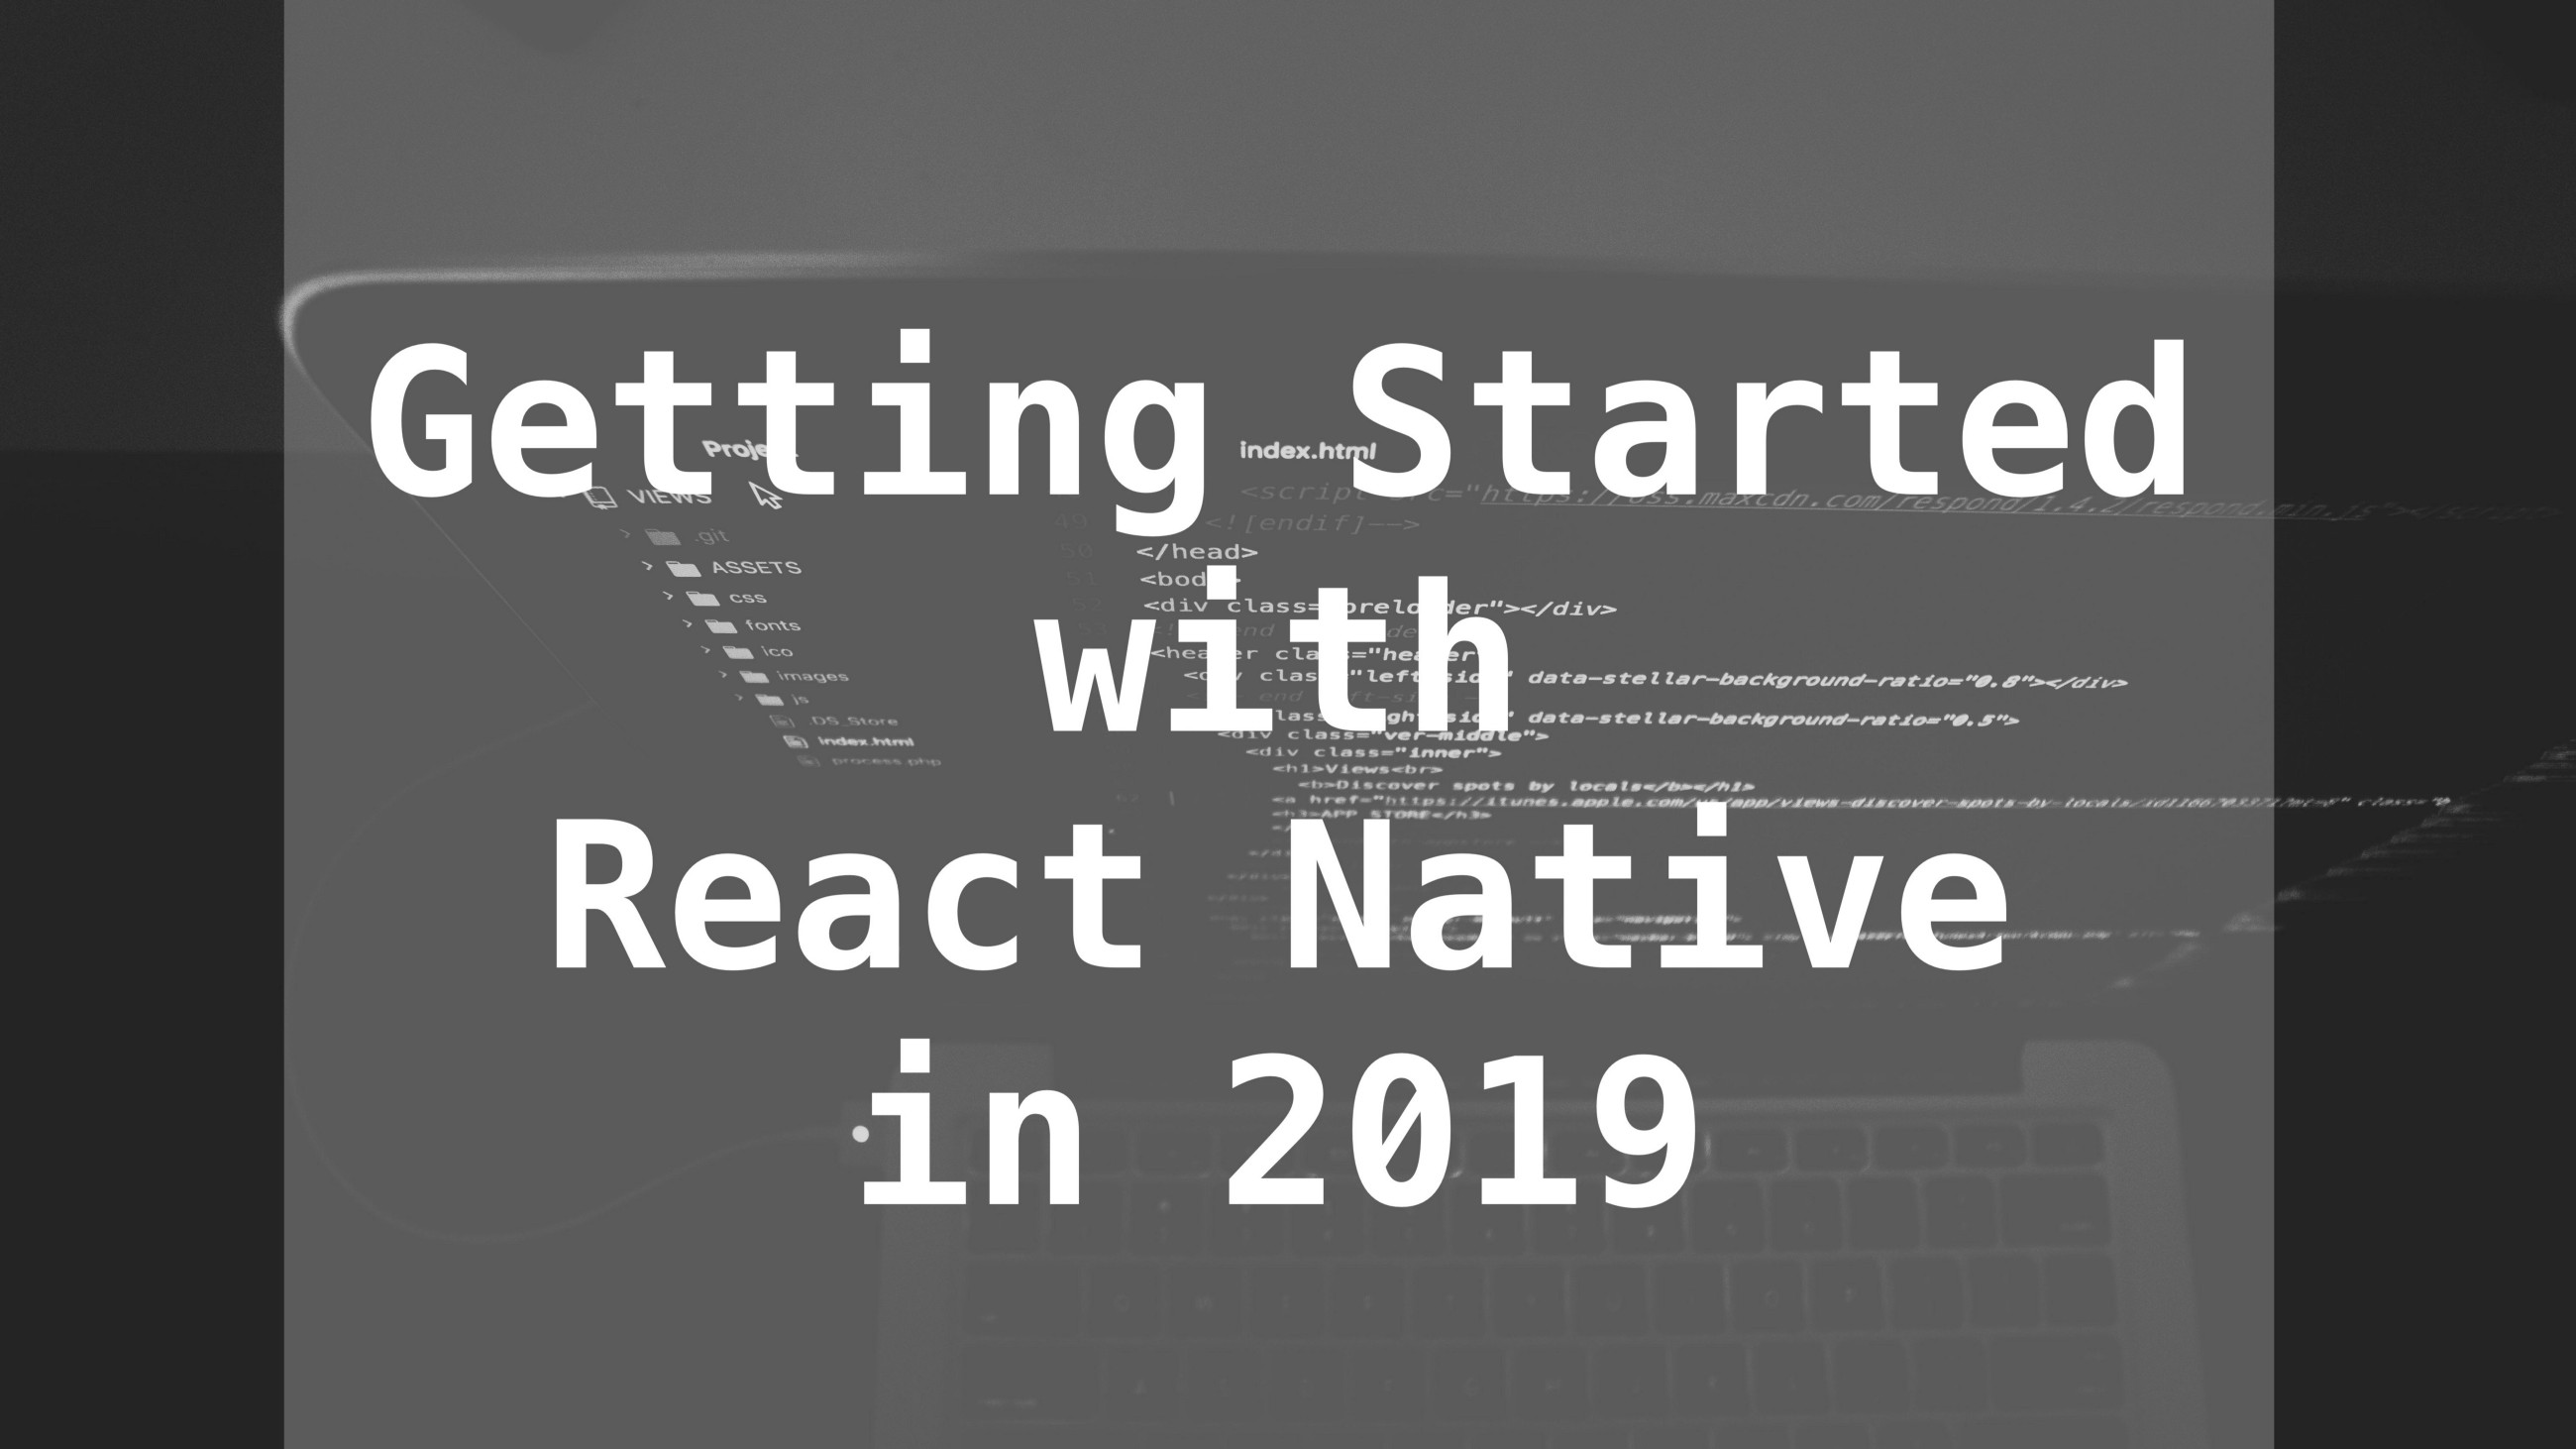 Getting Started with React Native in 2019: Build Your First App